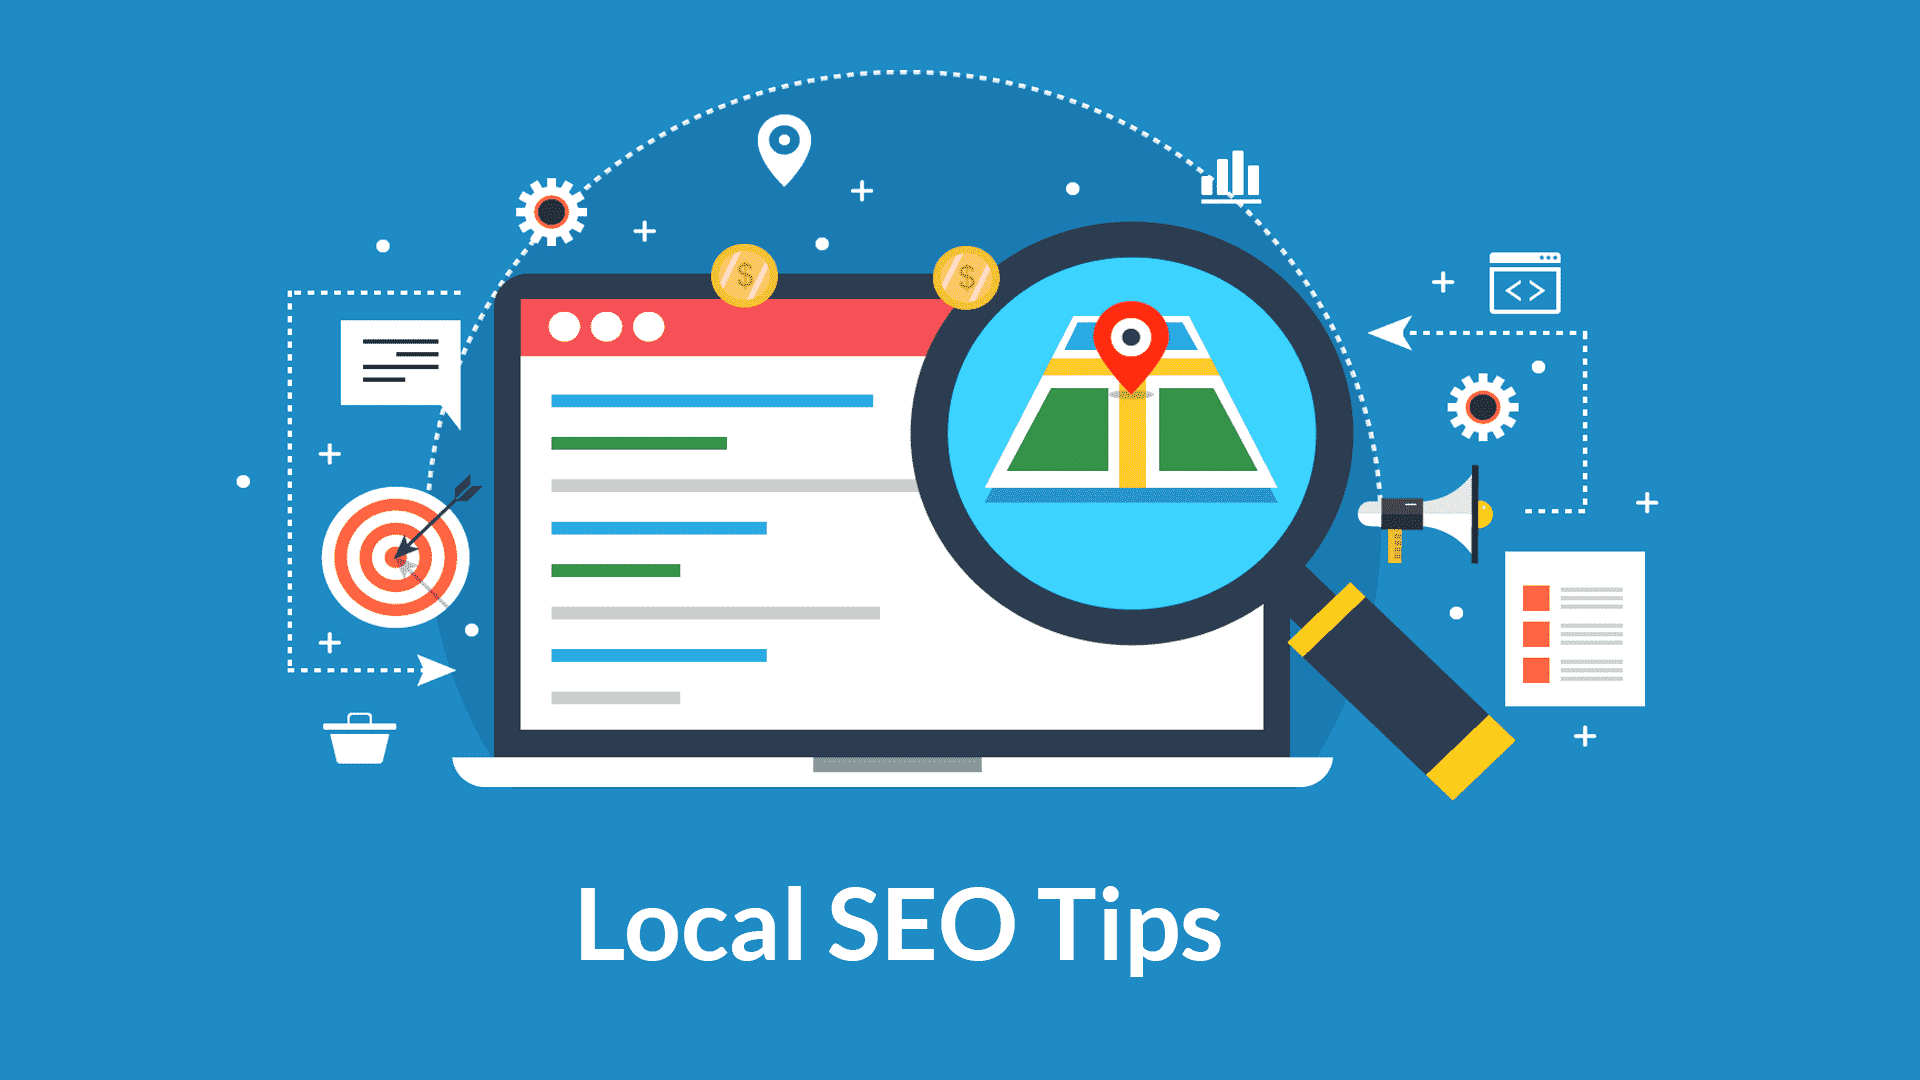 Local SEO: Learn to win your local businesses.